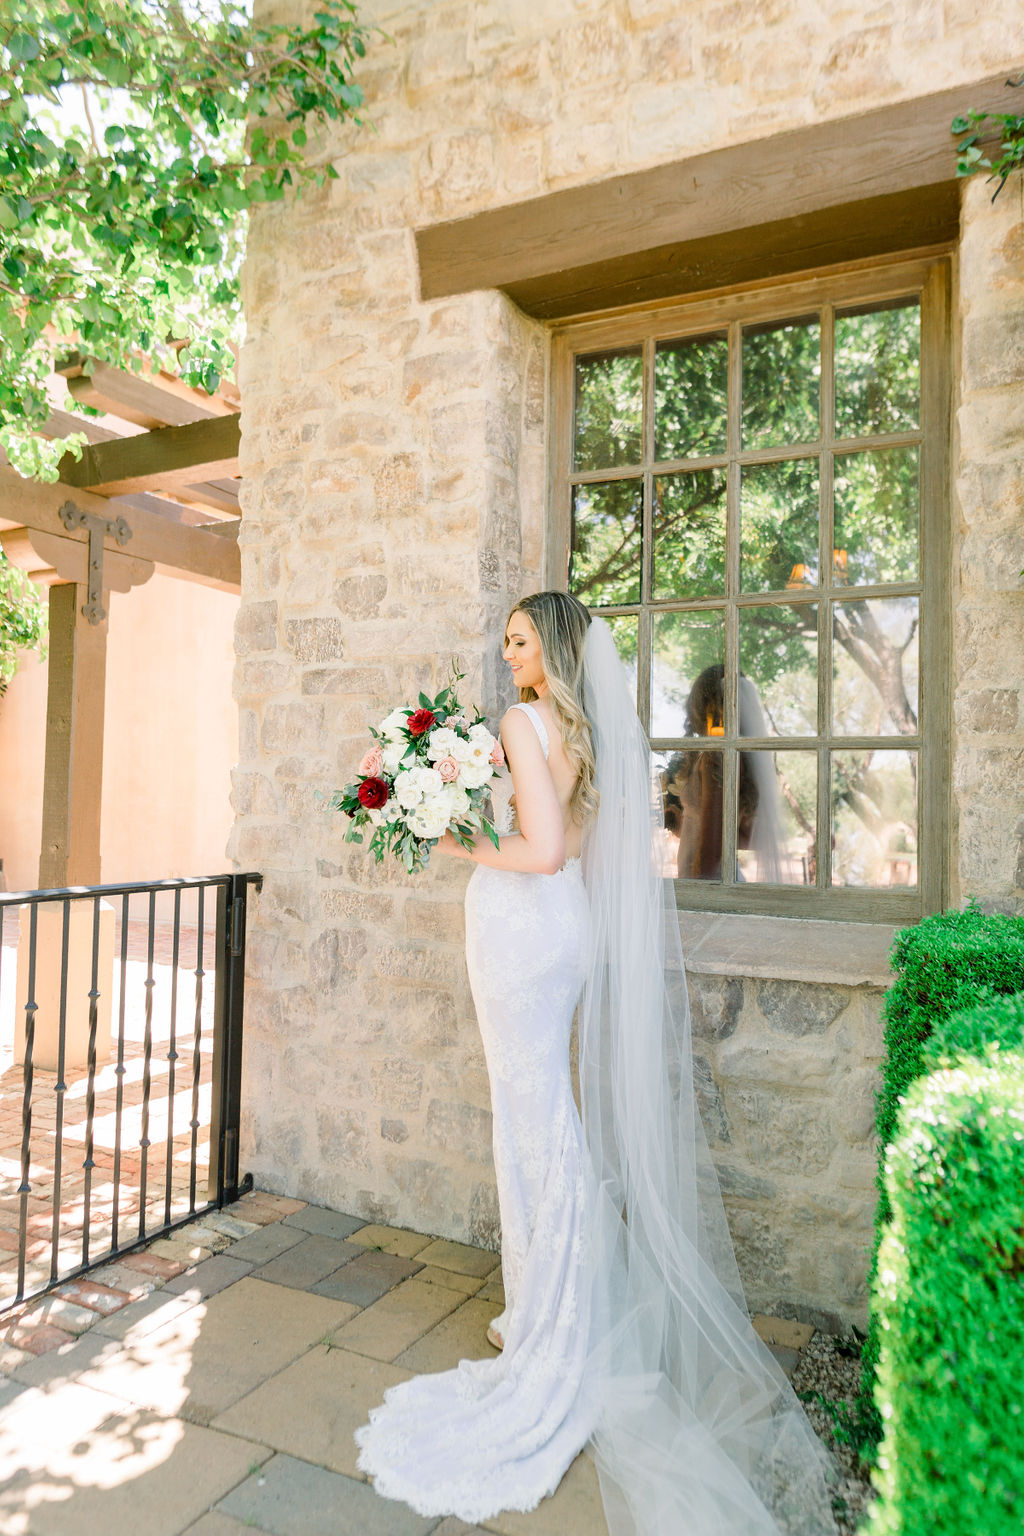 Superstition Mountain Destination Wedding - Arizona Wedding Florist - Phoenix, Scottsdale, Sedona - Classic Bridal Gown with Floor Length Veil